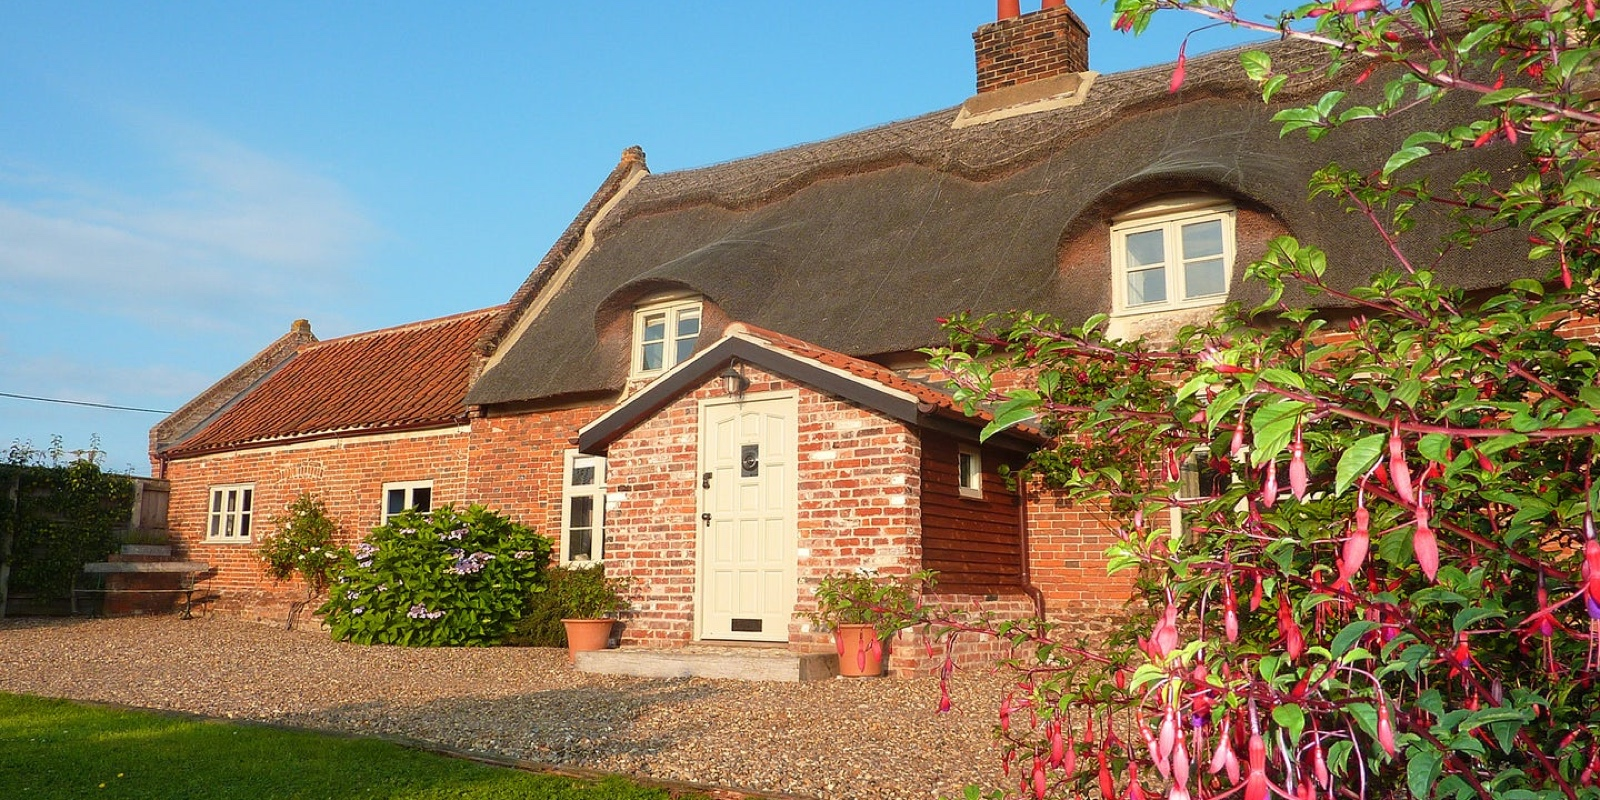 The Thatcher's Cottage